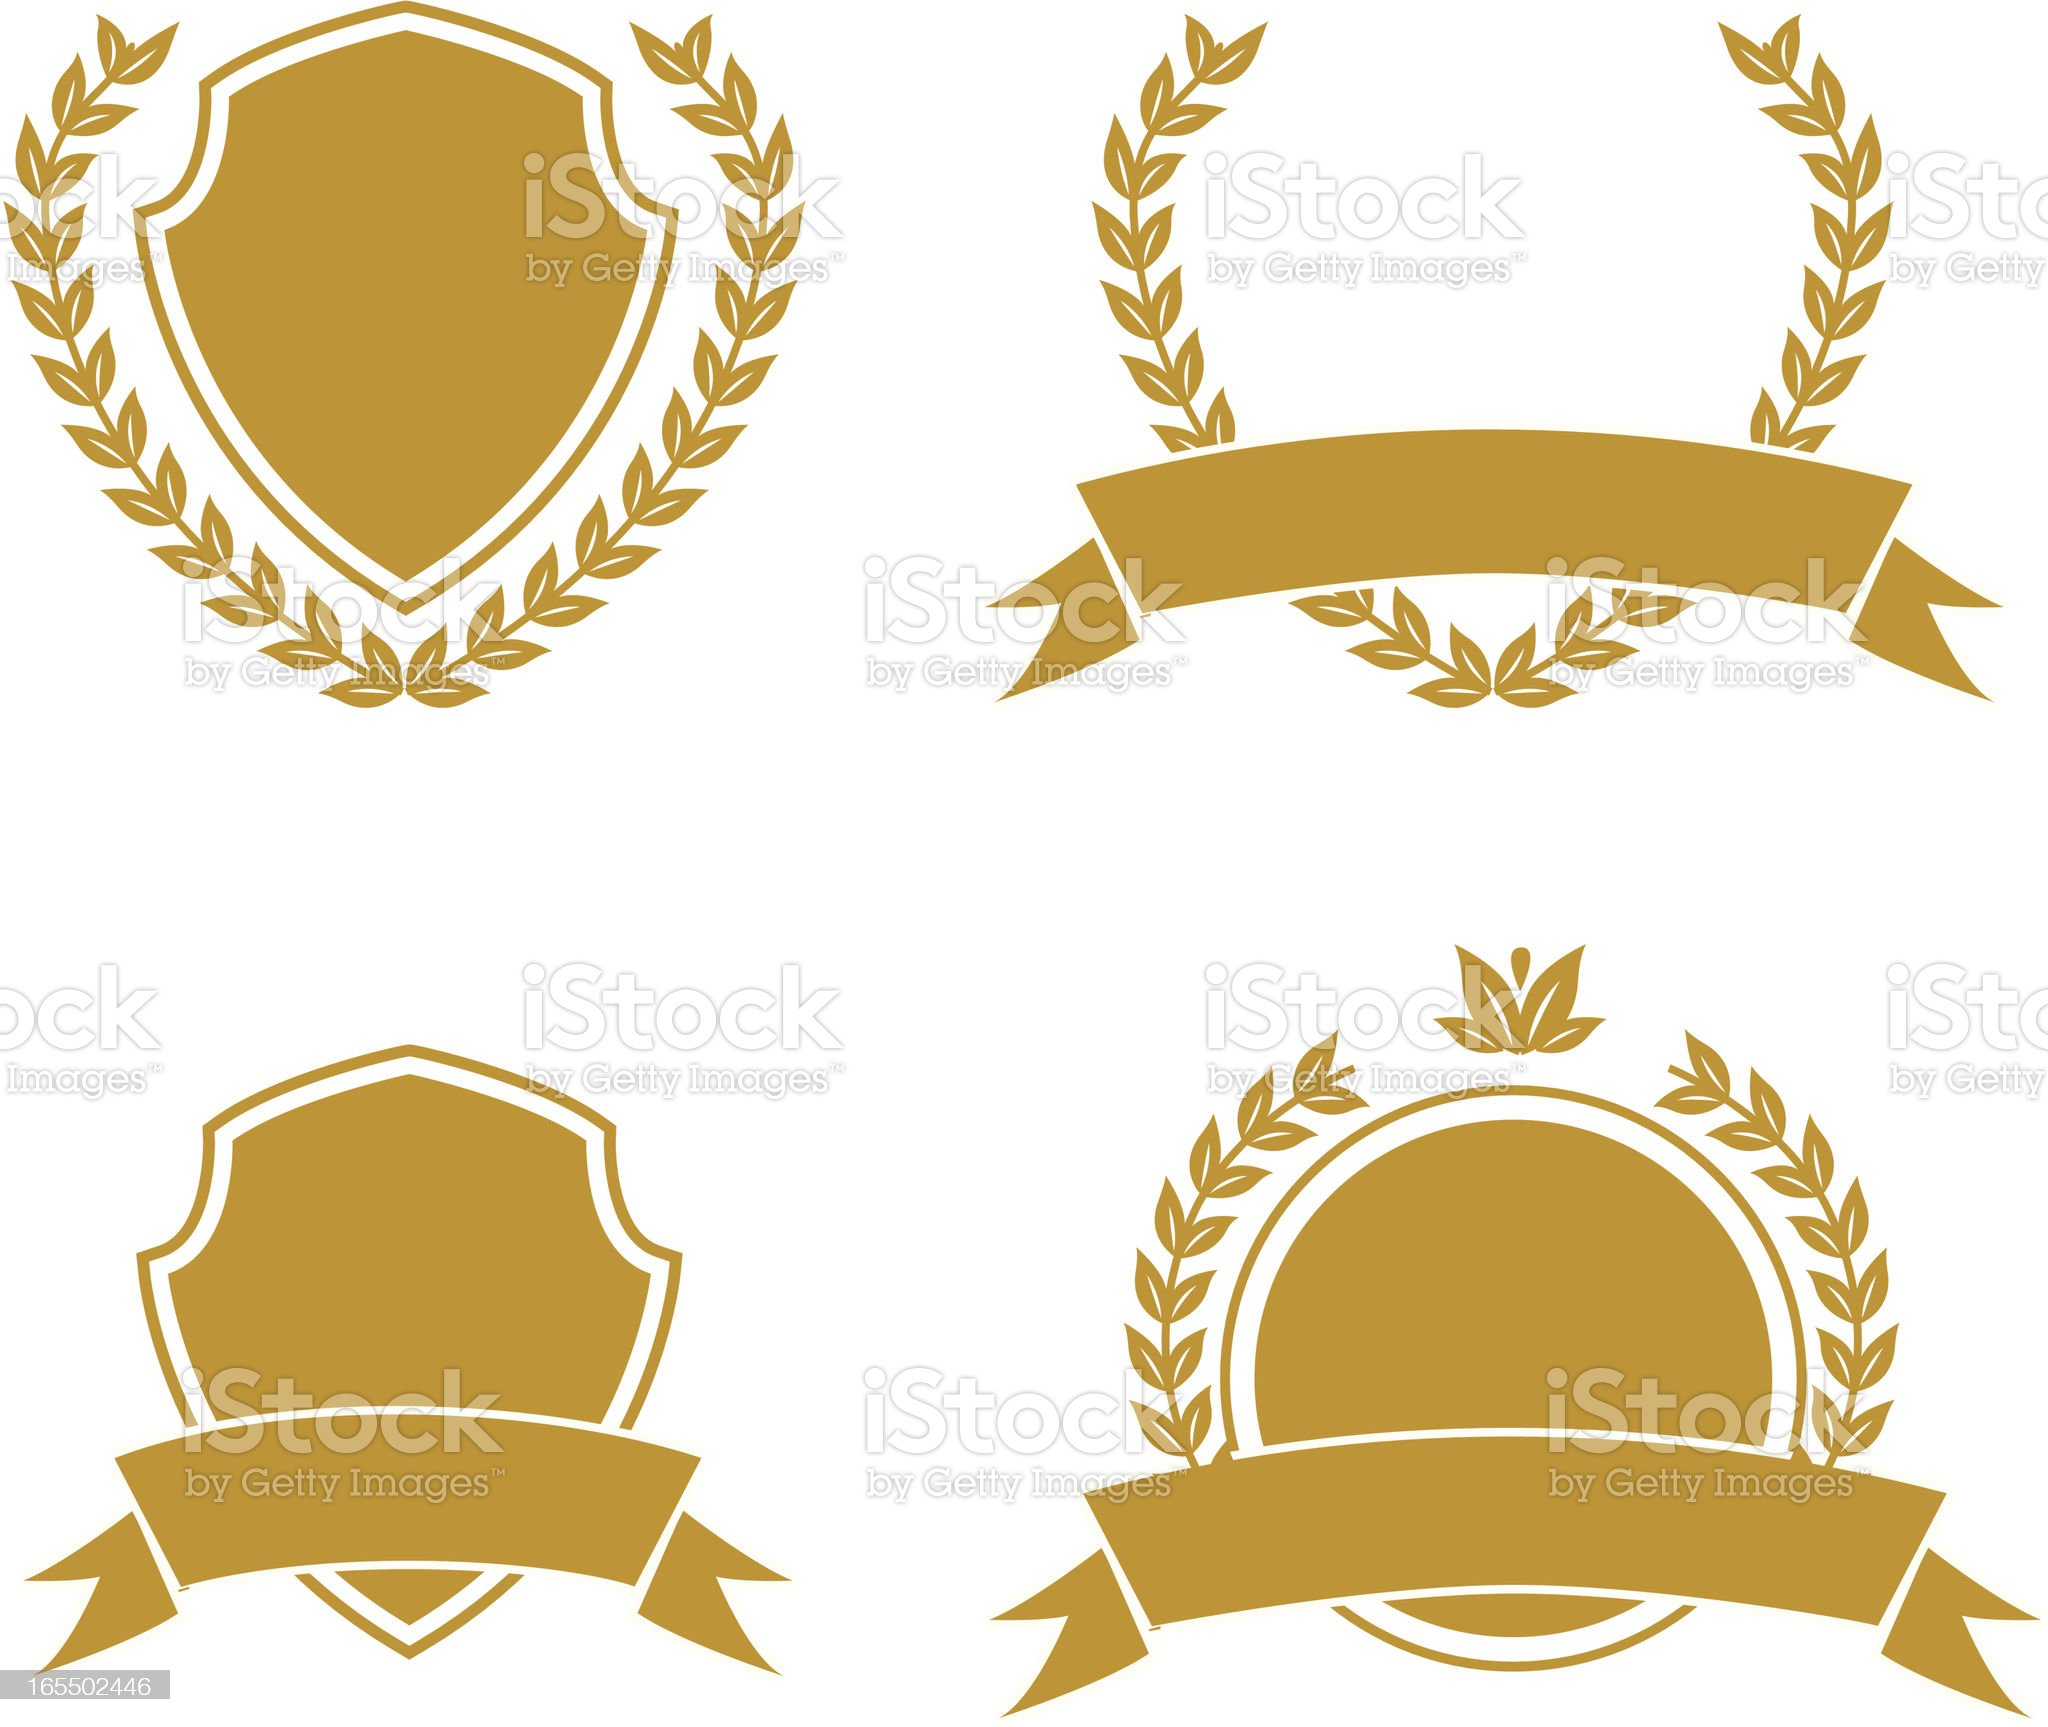 wreaths and shields royalty-free stock vector art